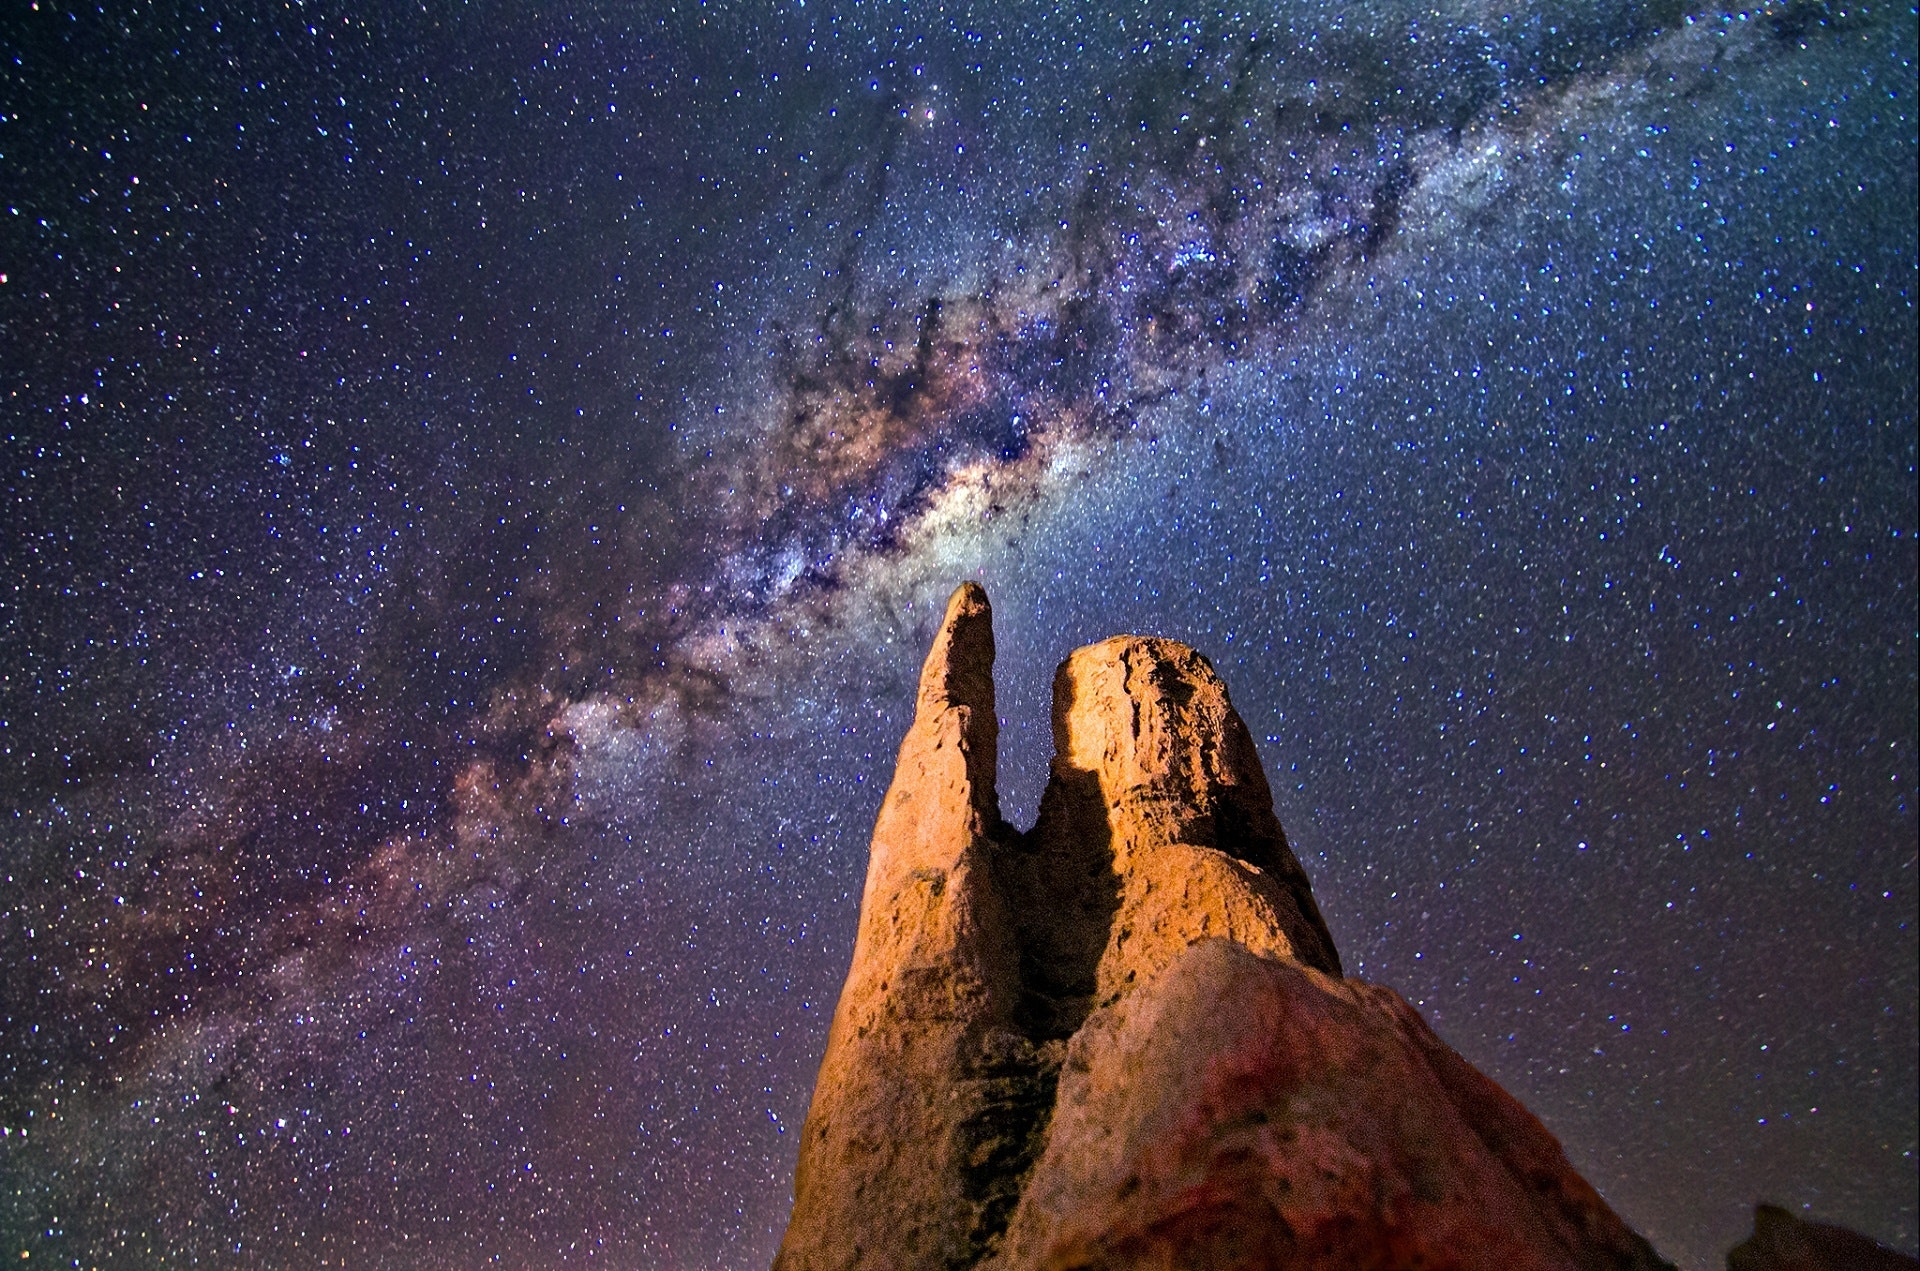 astronomy-cosmos-formation-167843